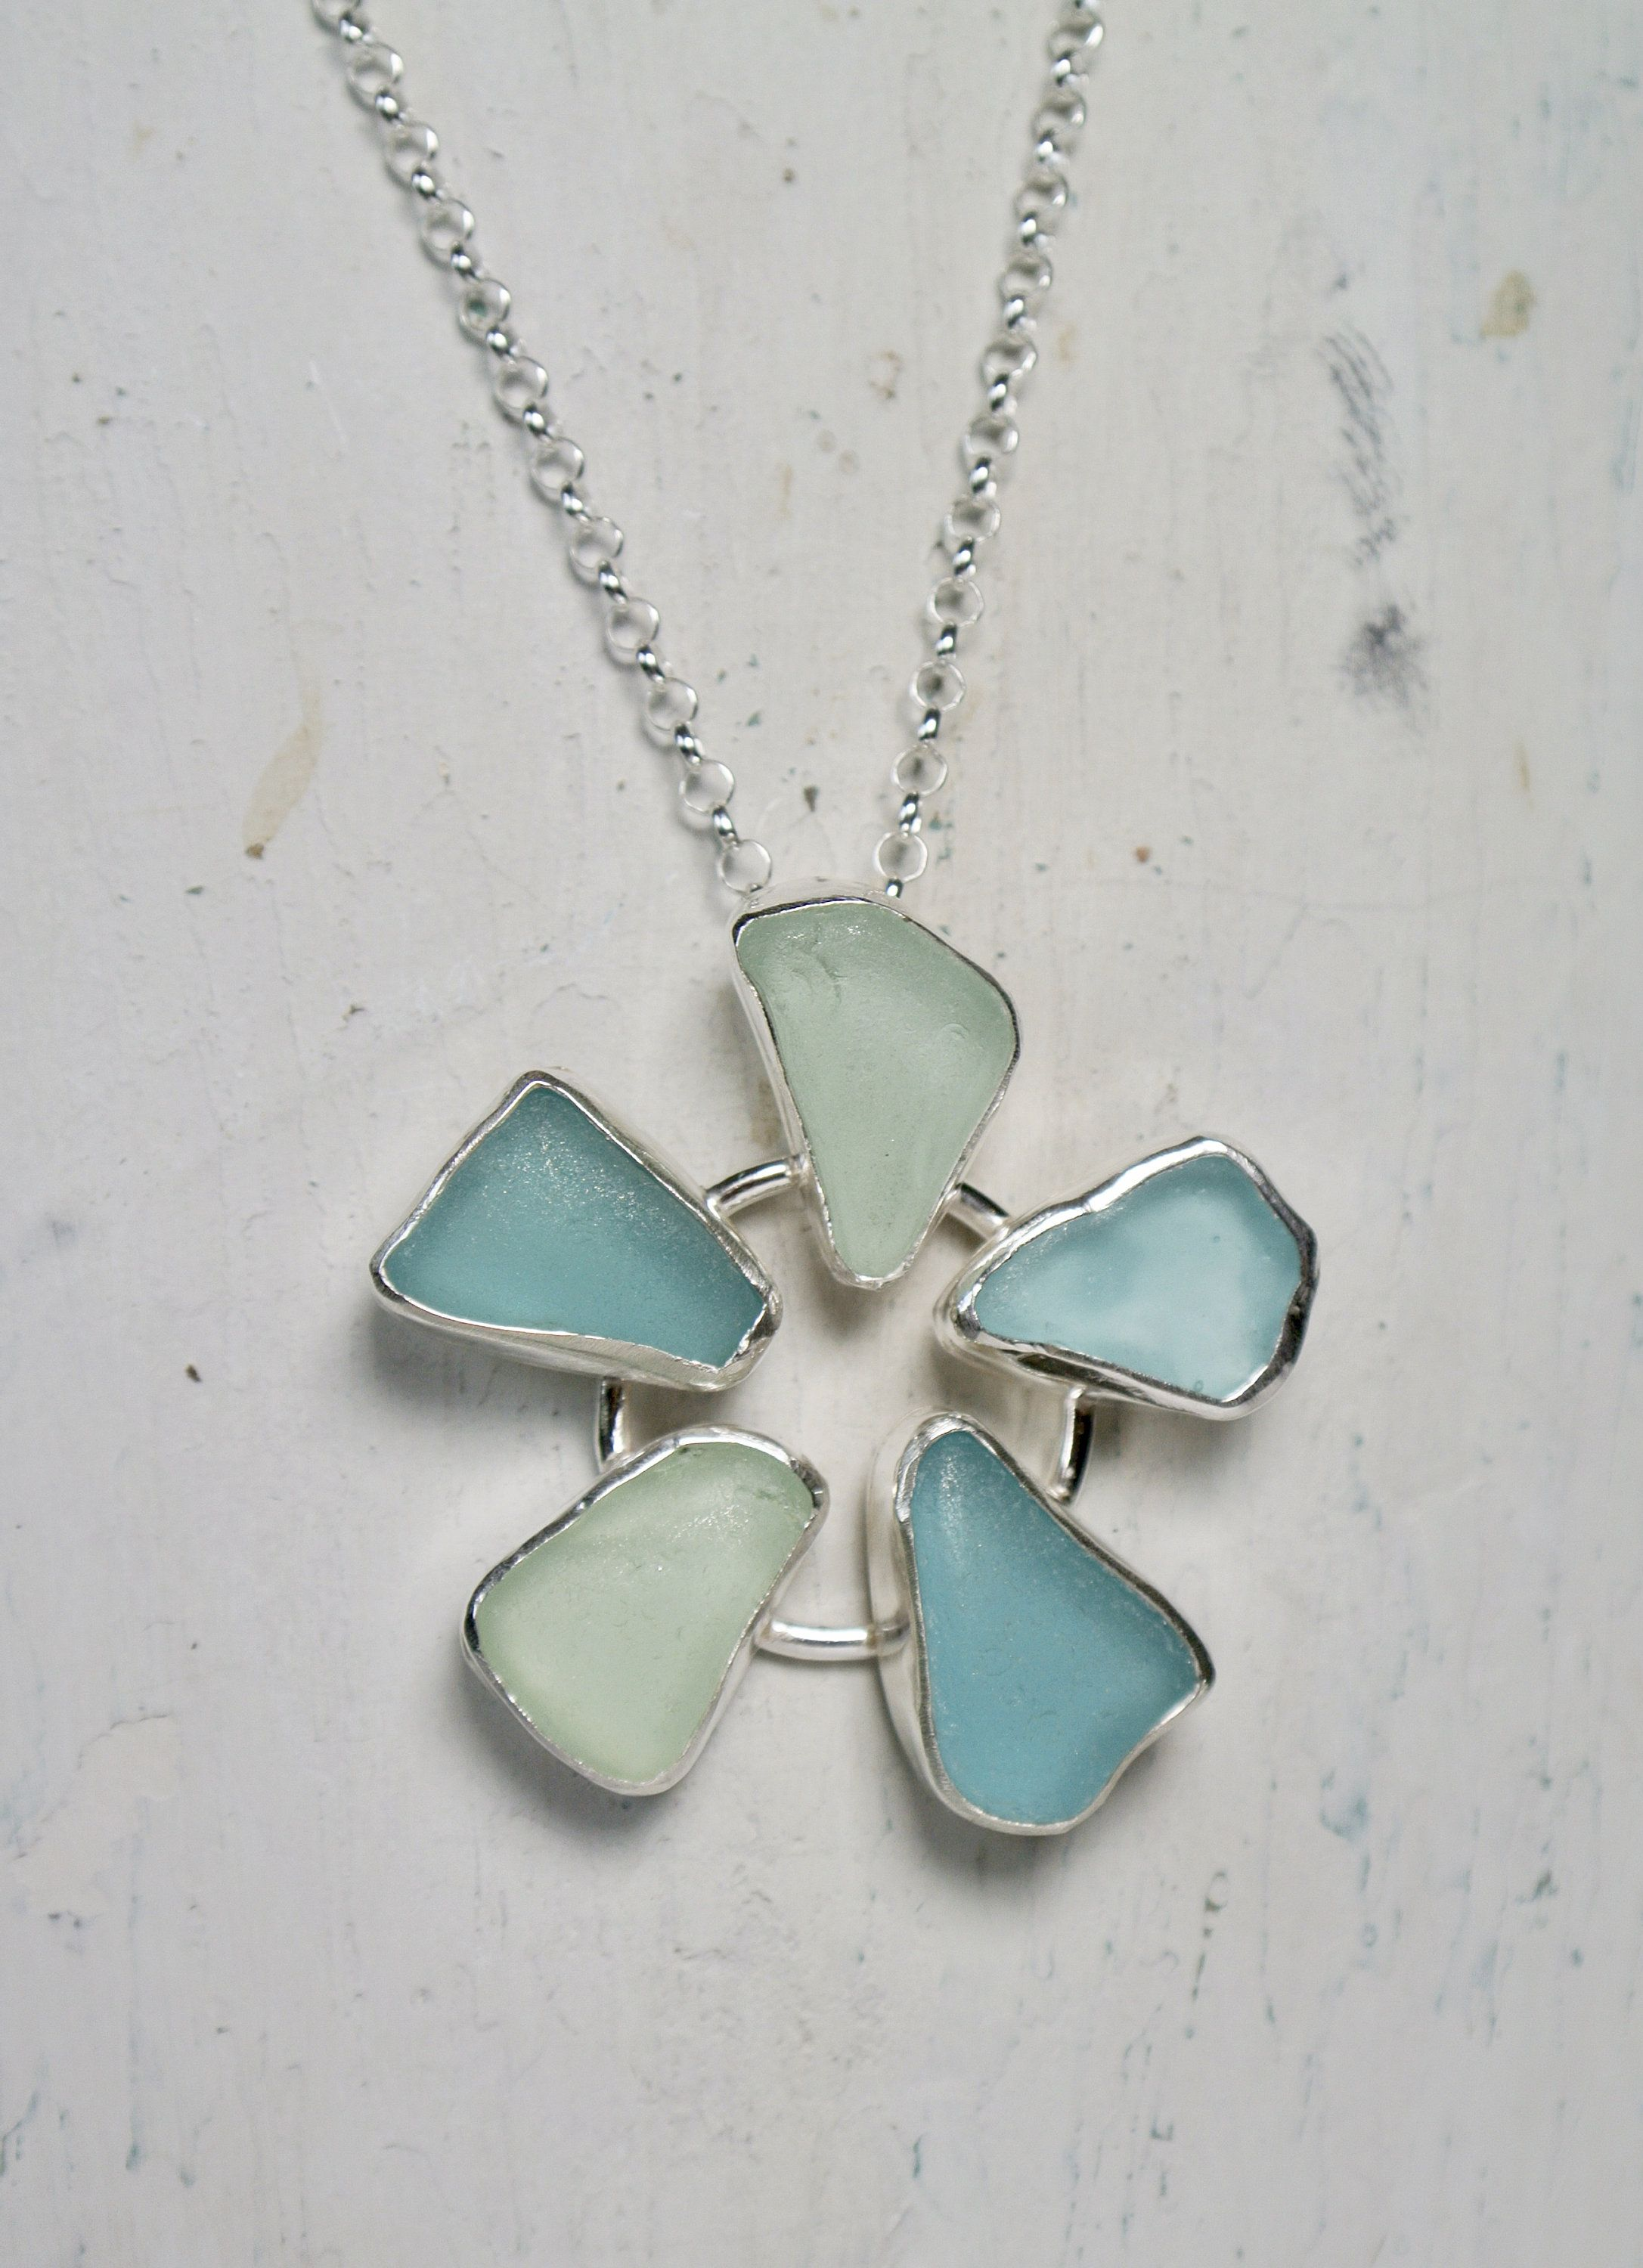 Sea glass jewelry beach glass jewelry sea glass necklace sea sea glass jewelry beach glass jewelry sea glass necklace sea glass pendant beach glass necklace flower necklace sea glass statement aloadofball Image collections